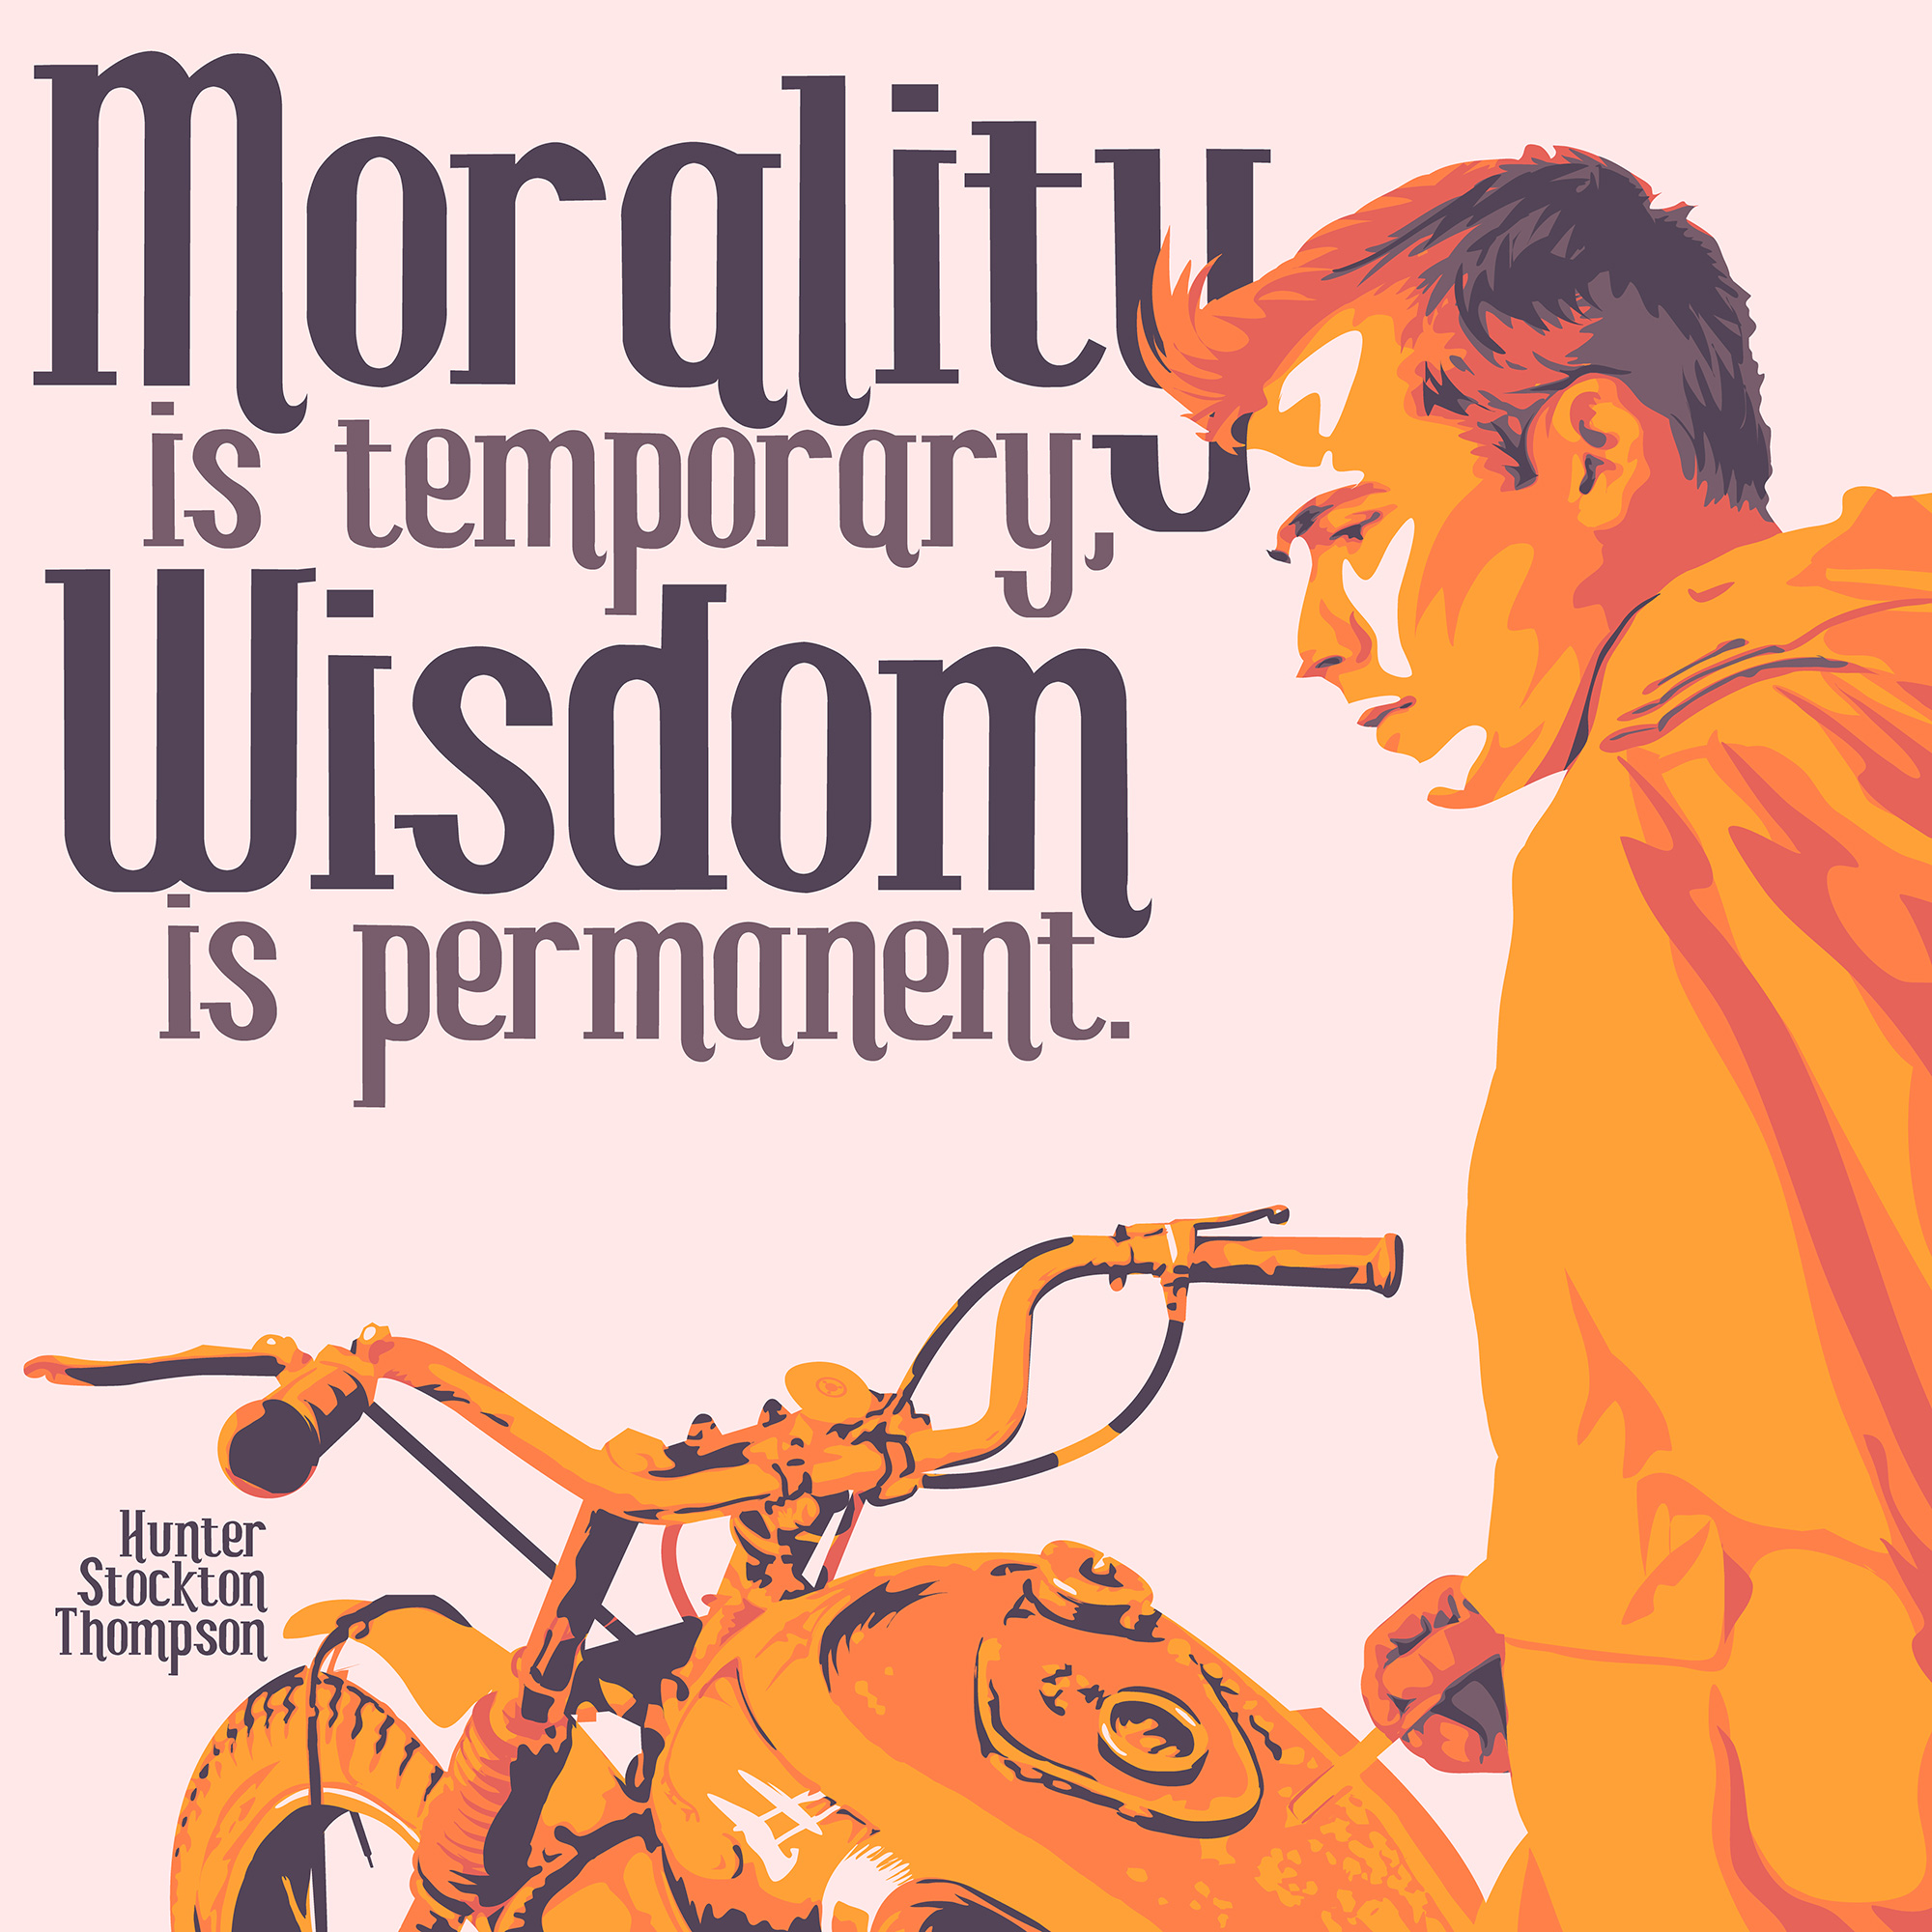 """Morality is temporary. Wisdom is permanent."" – Hunter Stockton Thompson [2000×2000] [OC] [OS]"